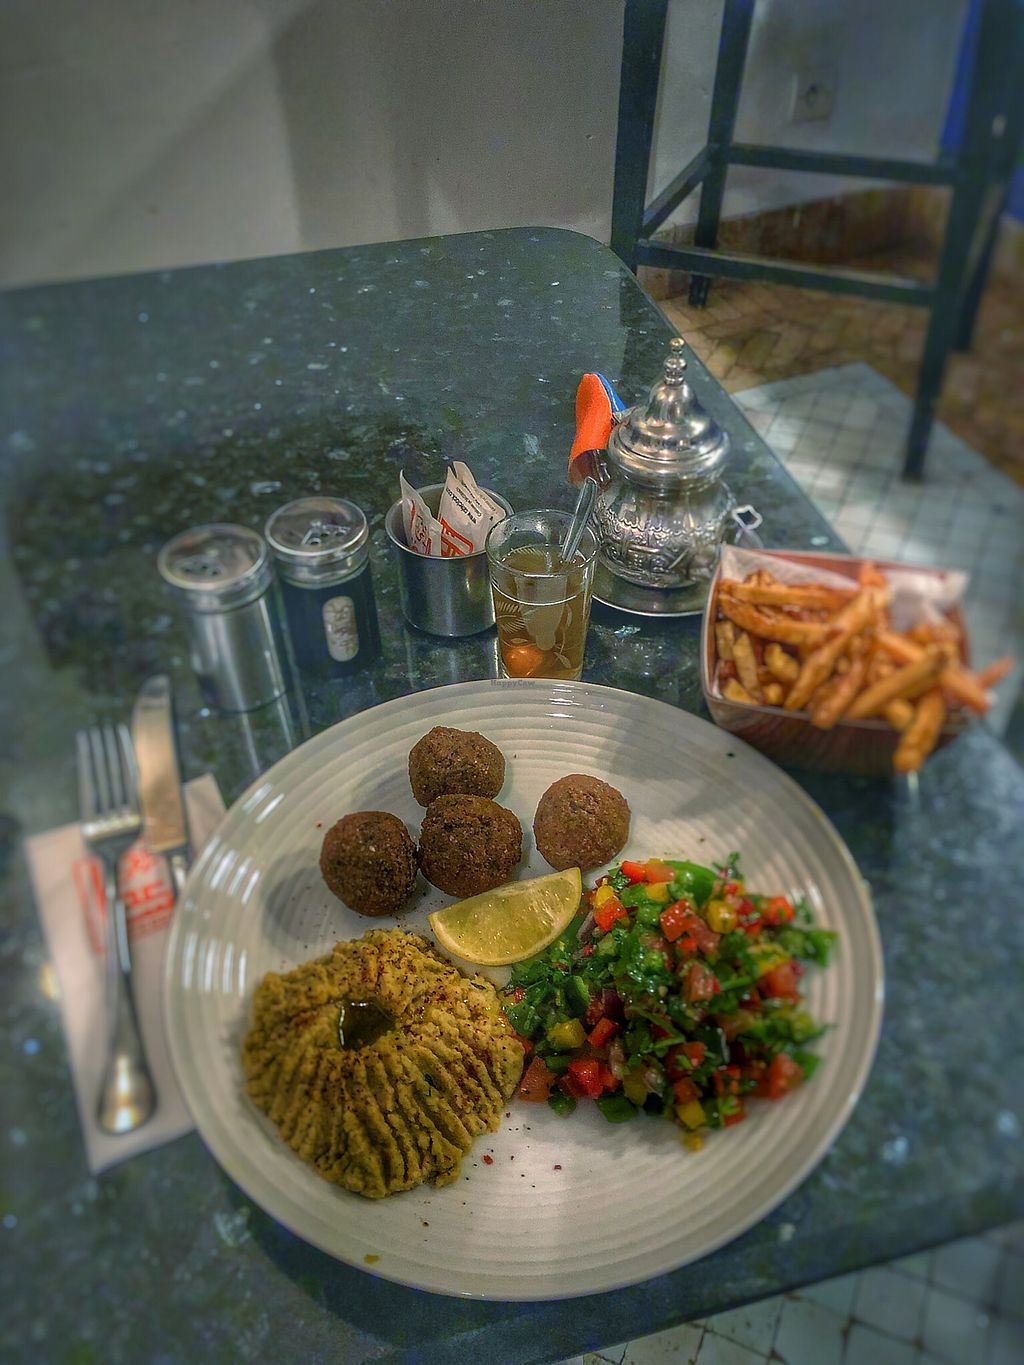 "Photo of Cafe Clock  by <a href=""/members/profile/partyprince"">partyprince</a> <br/>Delicious falafel, humous & salad with fries and herb tea <br/> January 23, 2018  - <a href='/contact/abuse/image/82427/350196'>Report</a>"